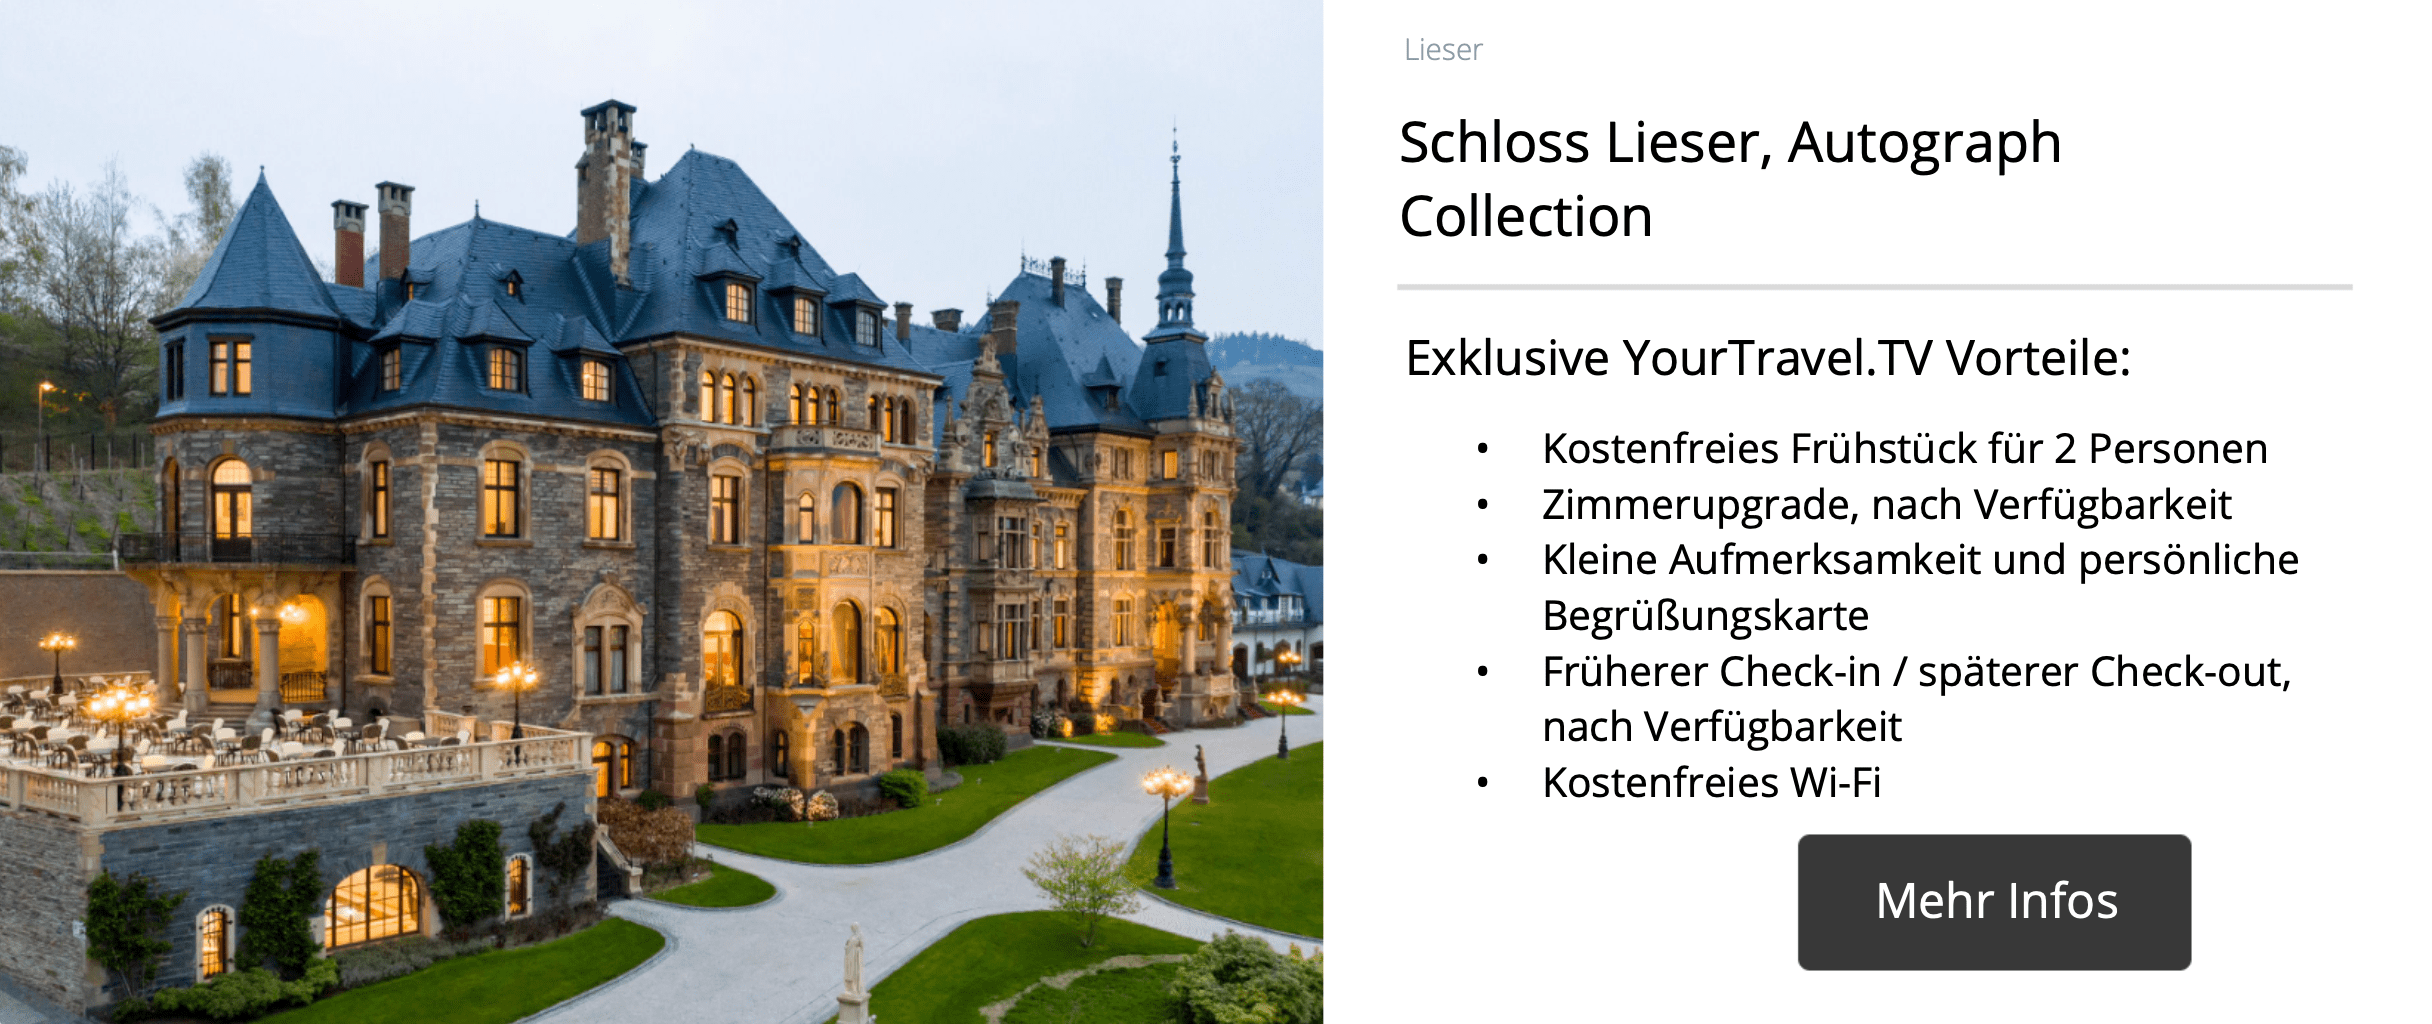 Schloss Lieser, Autograph Collection